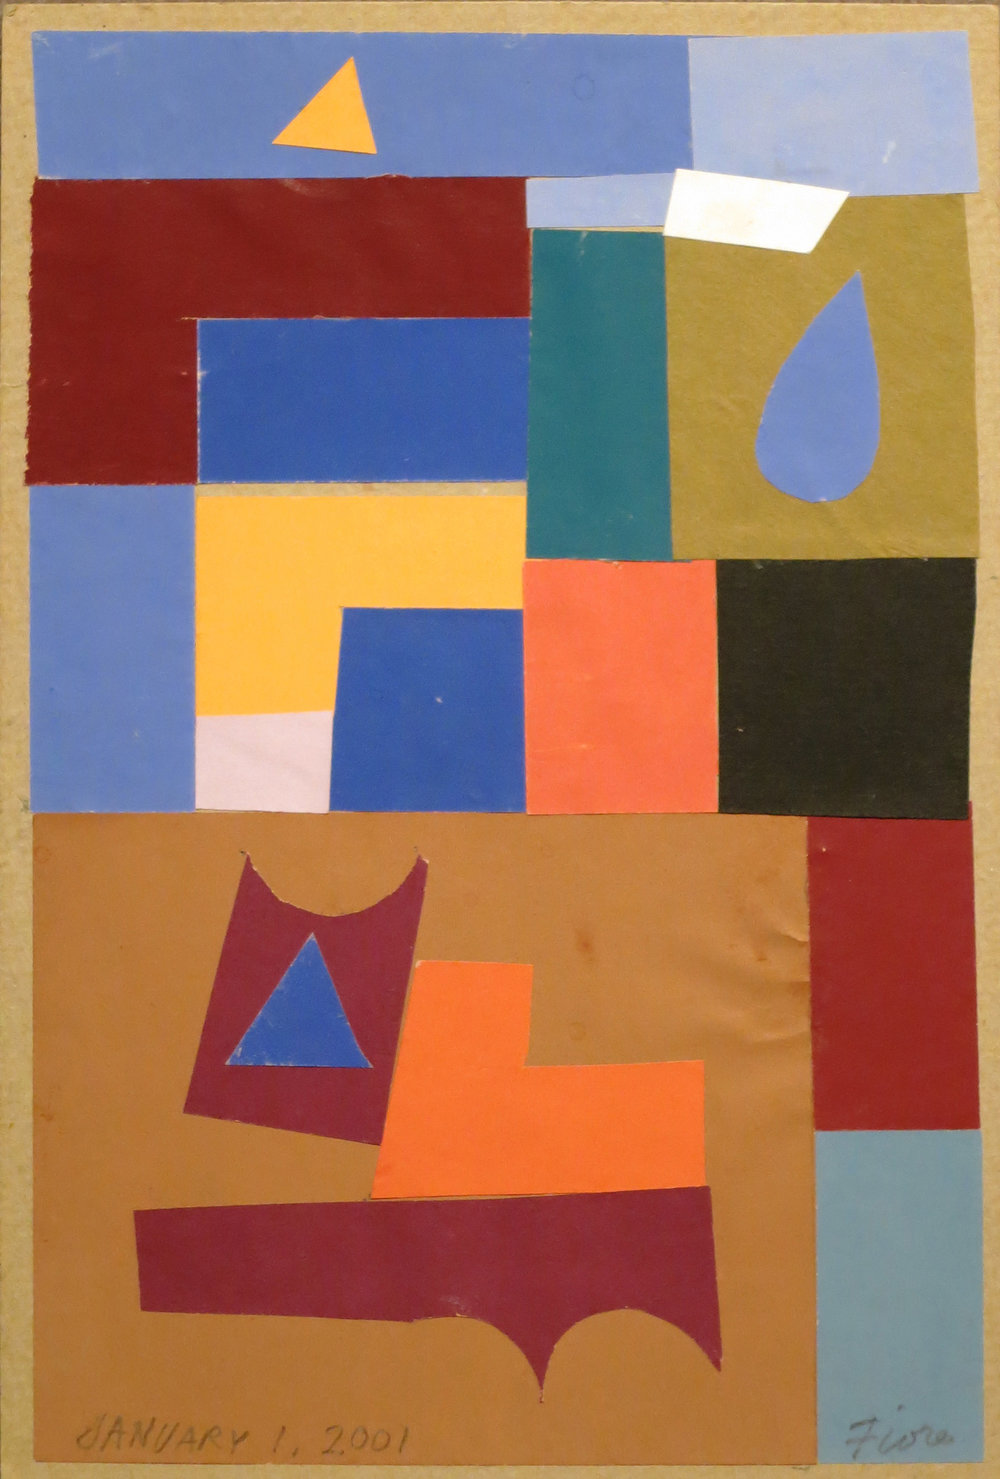 Abstract collage with red, blue, green, orange shapes on brown background